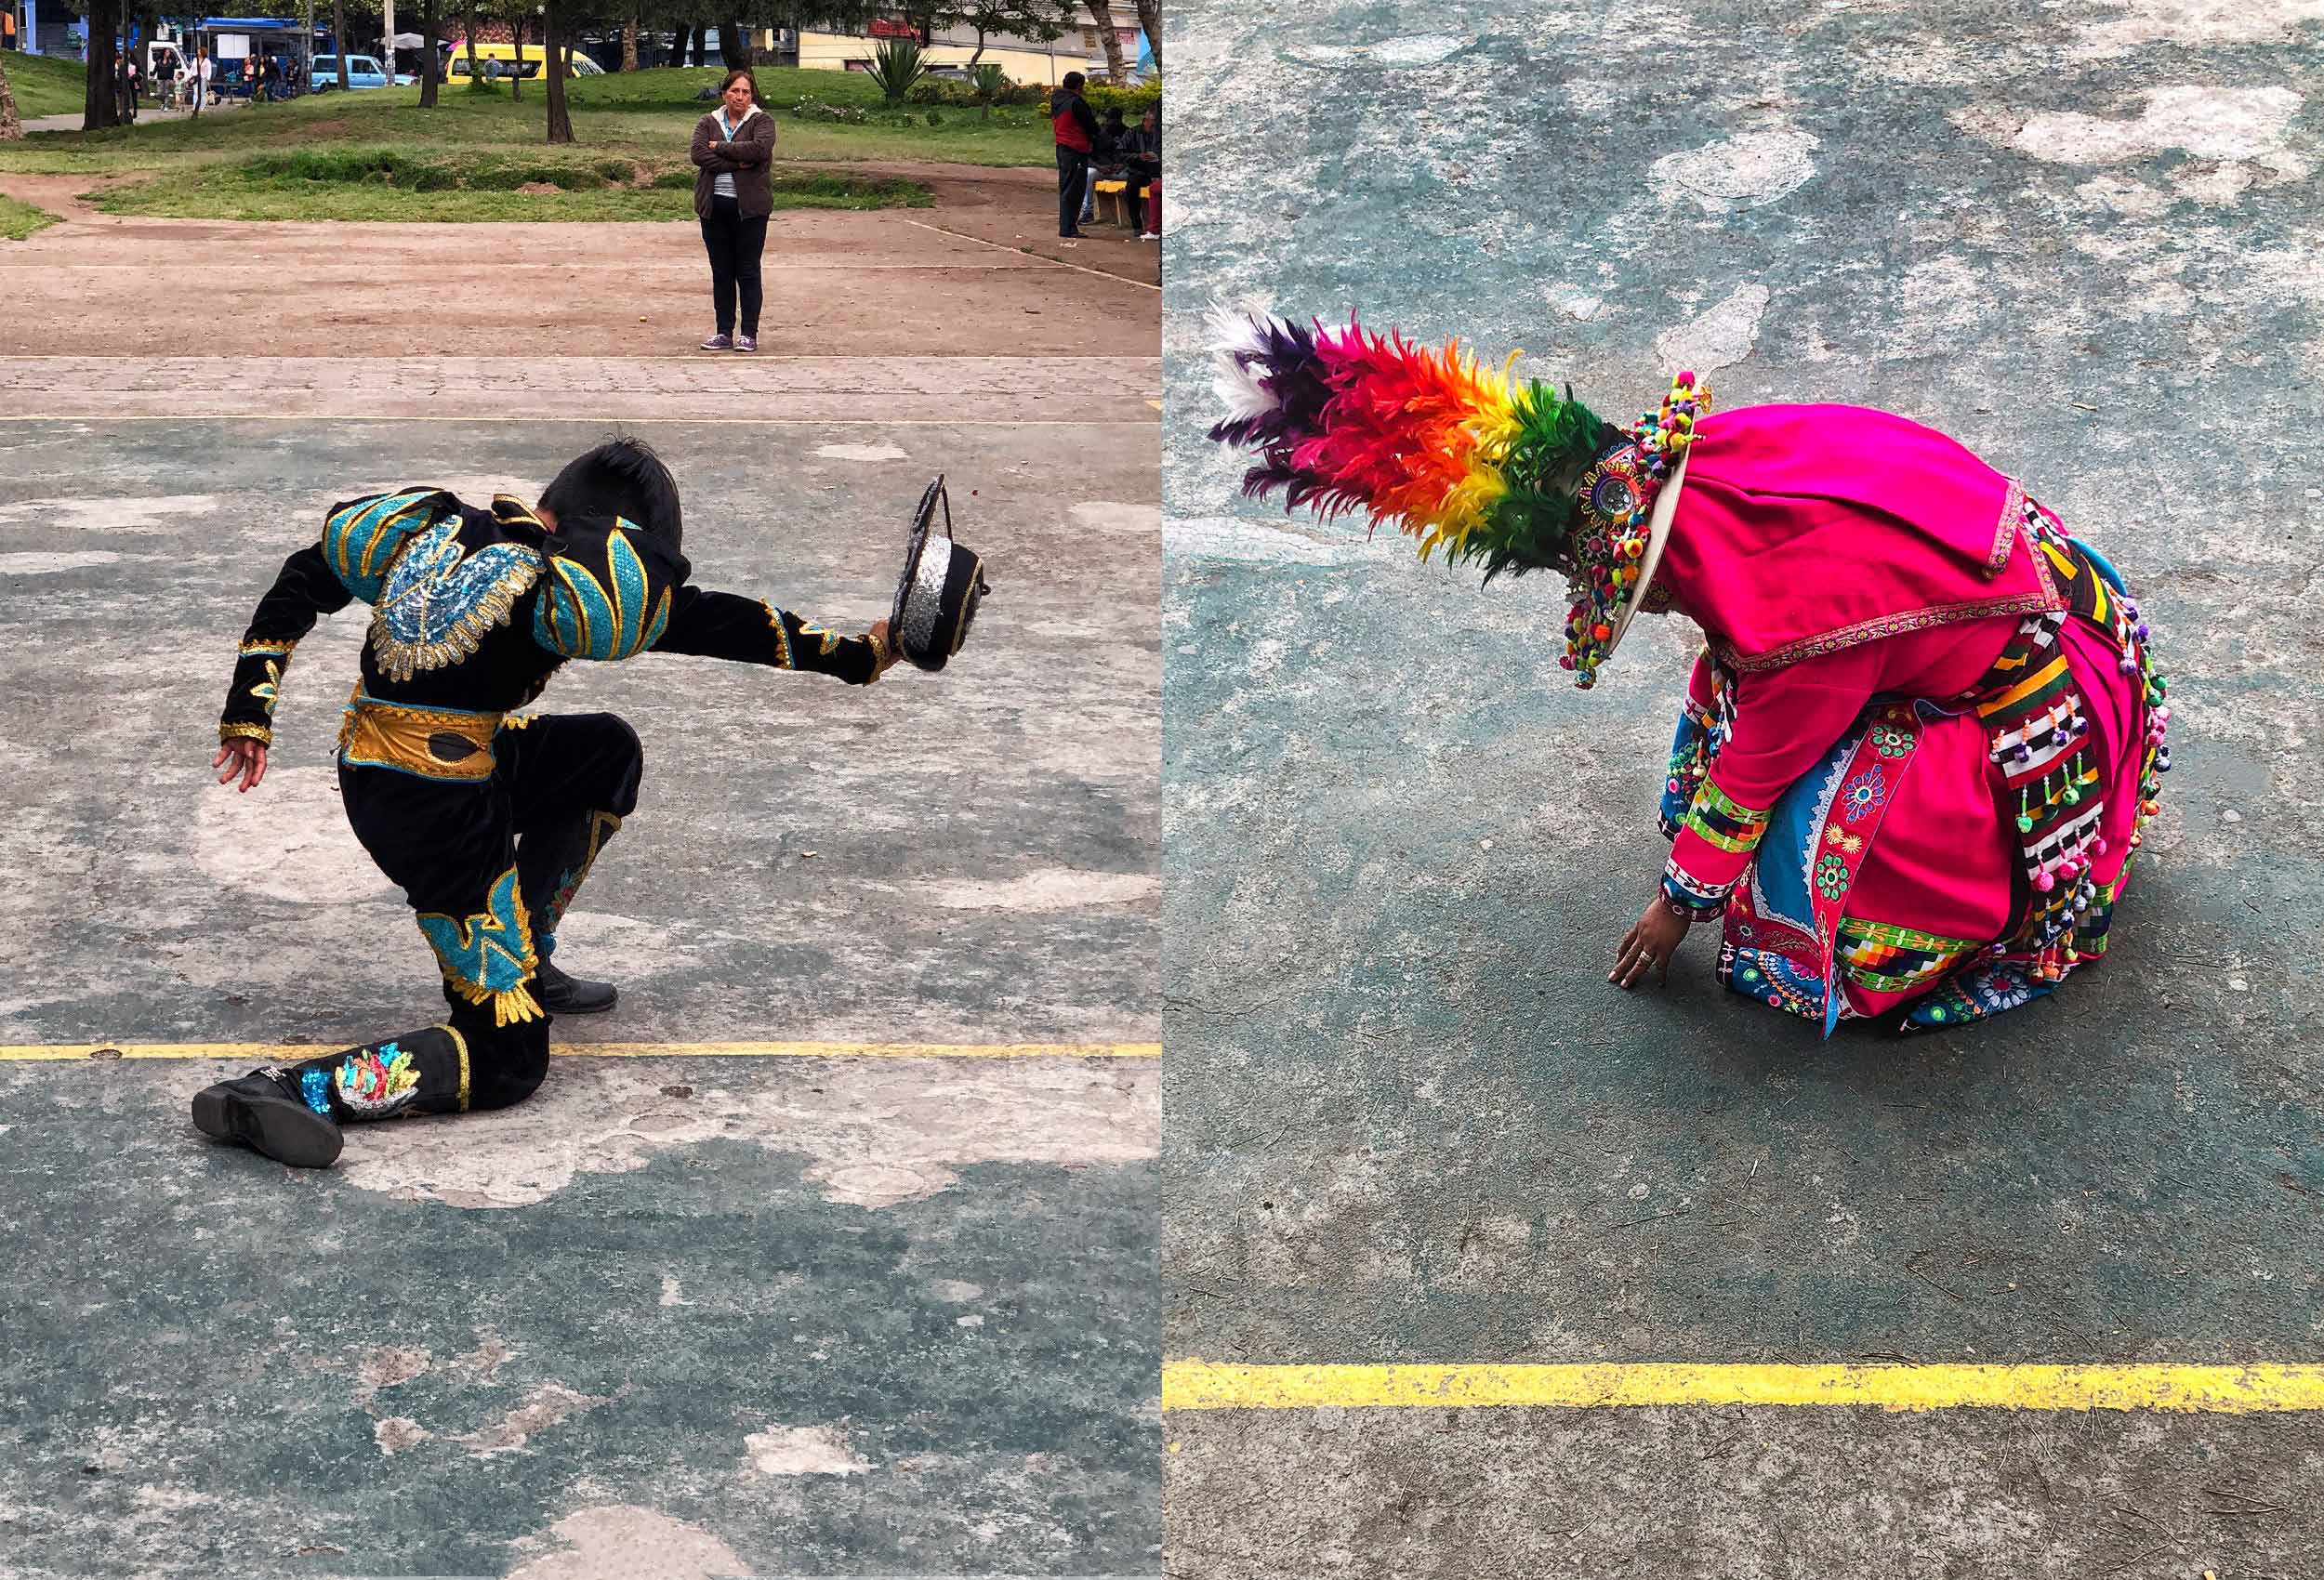 mayans-dance-in-a-park-in-Quito-by-Toronto-professional-photographer-John-Hryniuk